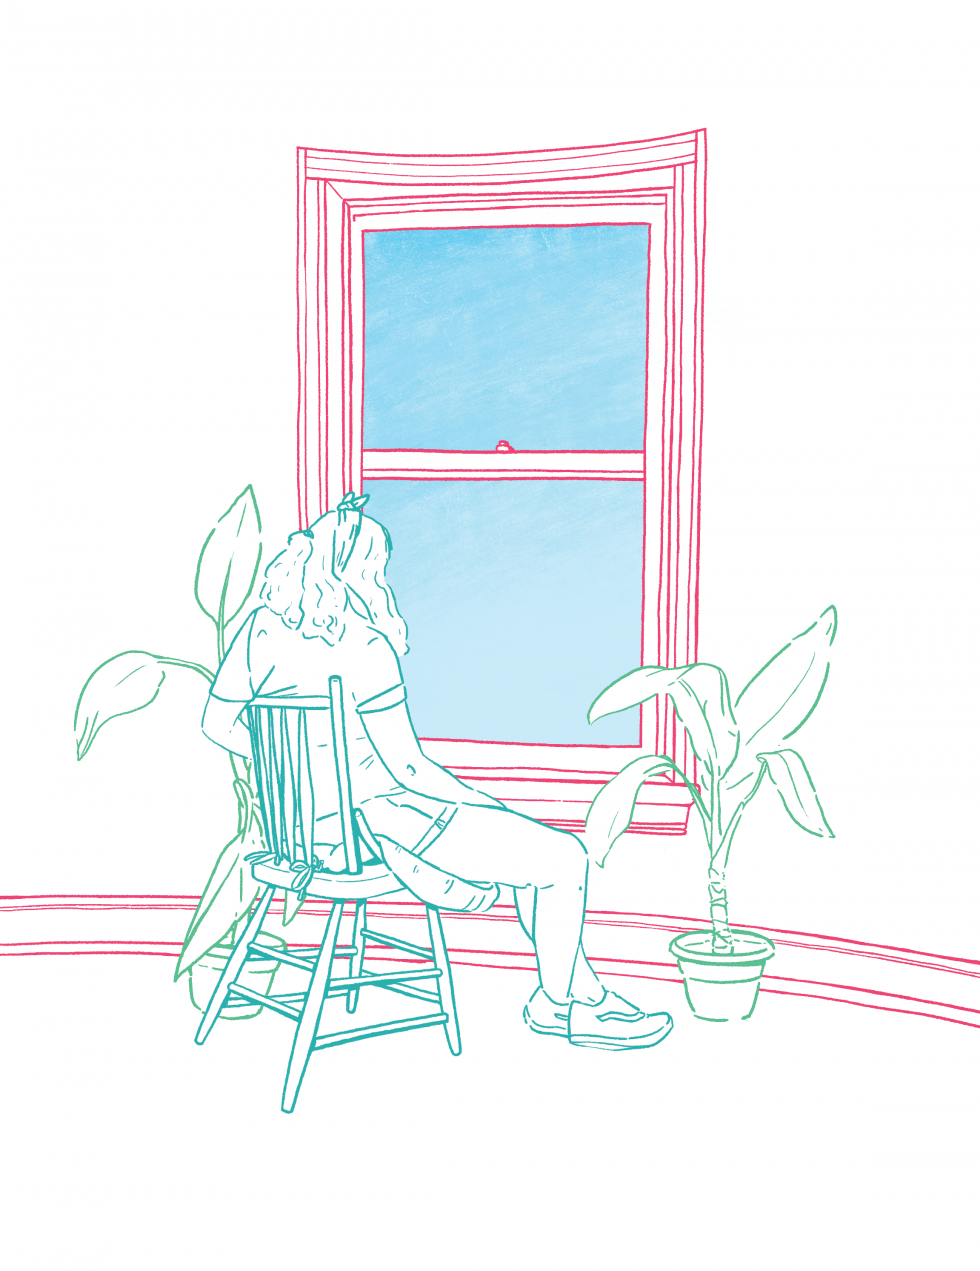 A figure sitting in a chair in front of a window surrounded by a couple of plants.